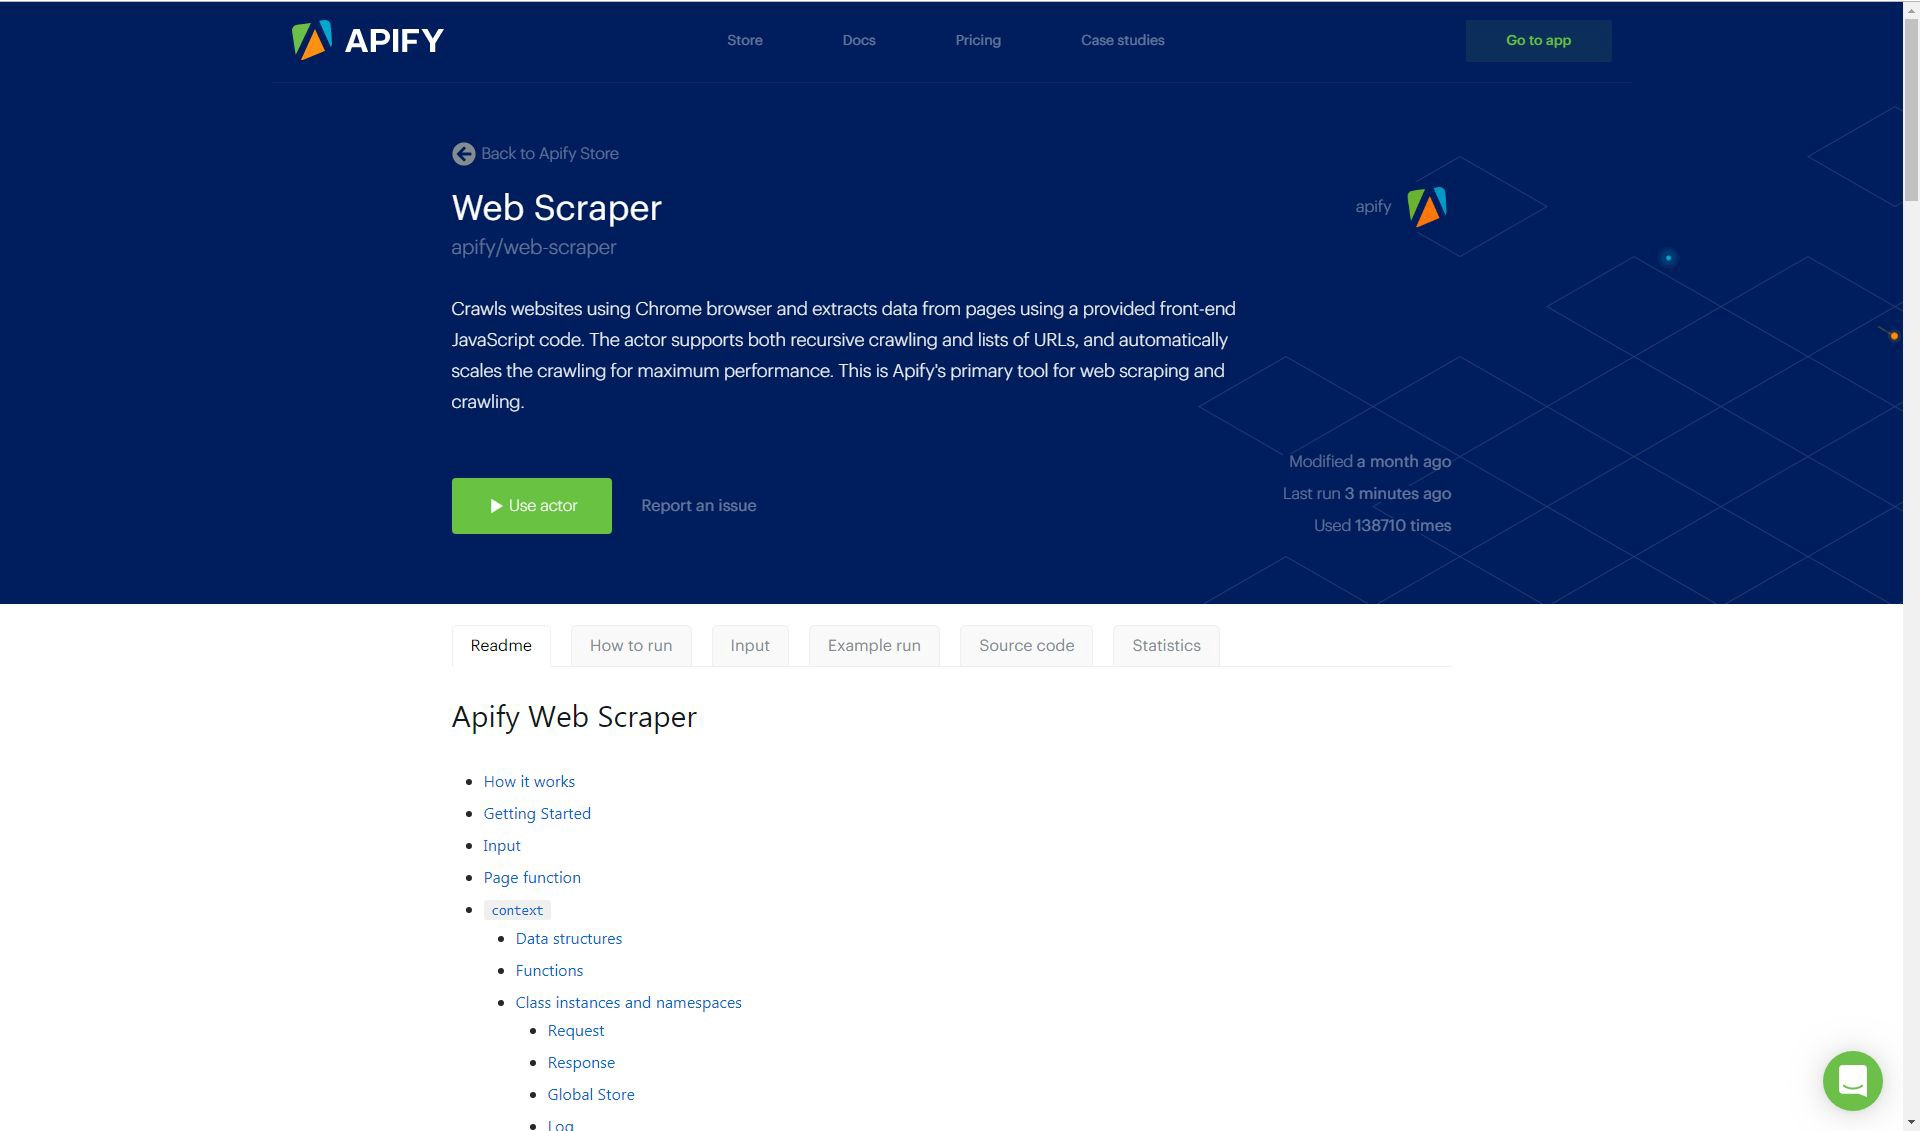 How to scrape any website (for beginners) - Apify Blog